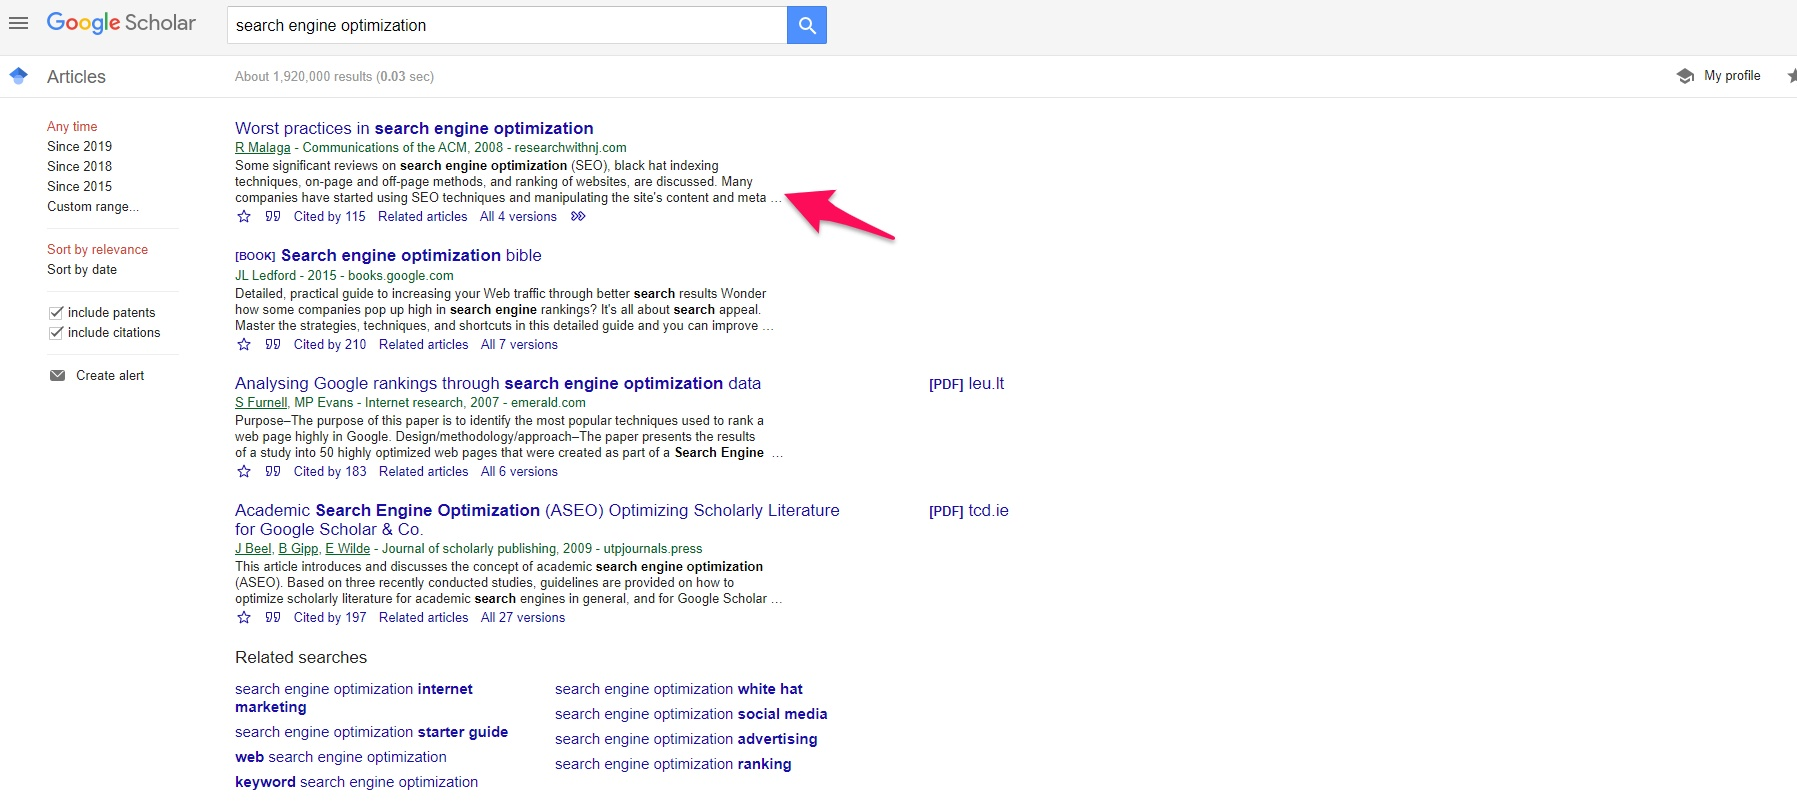 List of results on Google Scholar